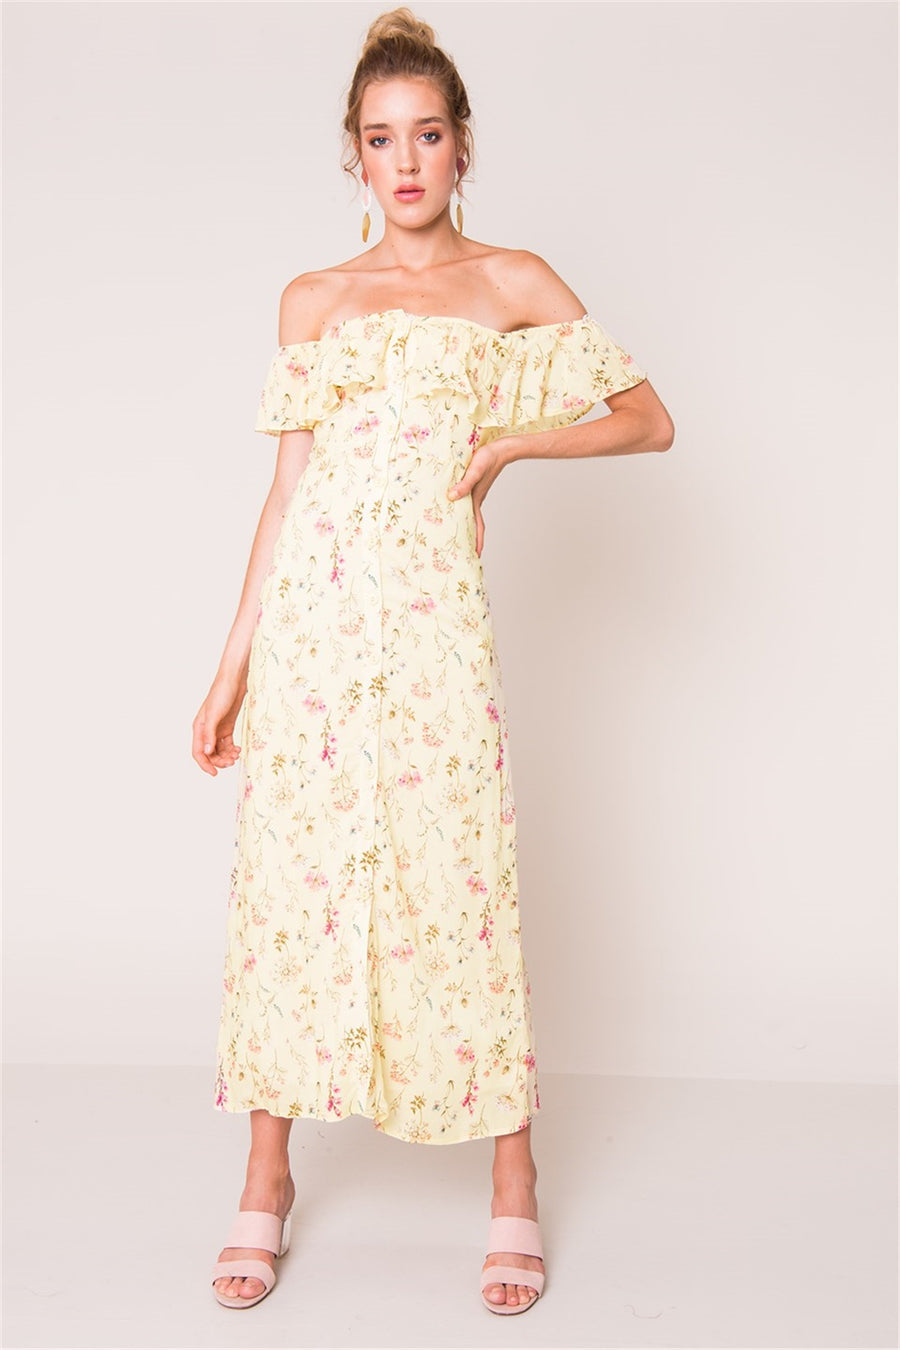 Off the Shoulder Ruffle Dress - Yellow